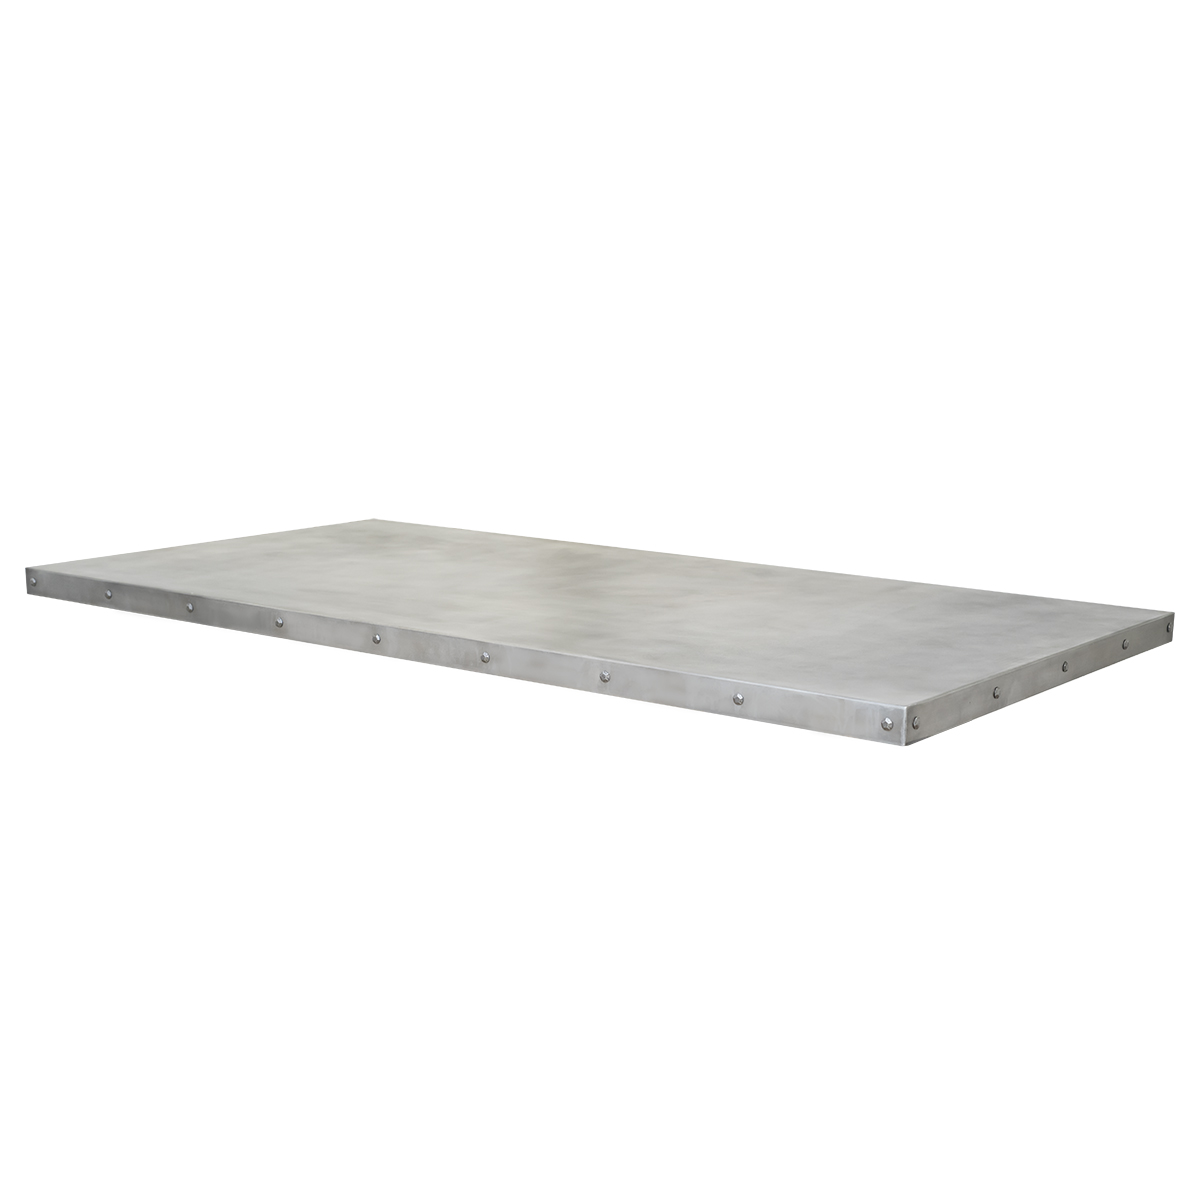 Marvelous Zinc Table Tops. 🔍. $ 1,315.00 ...